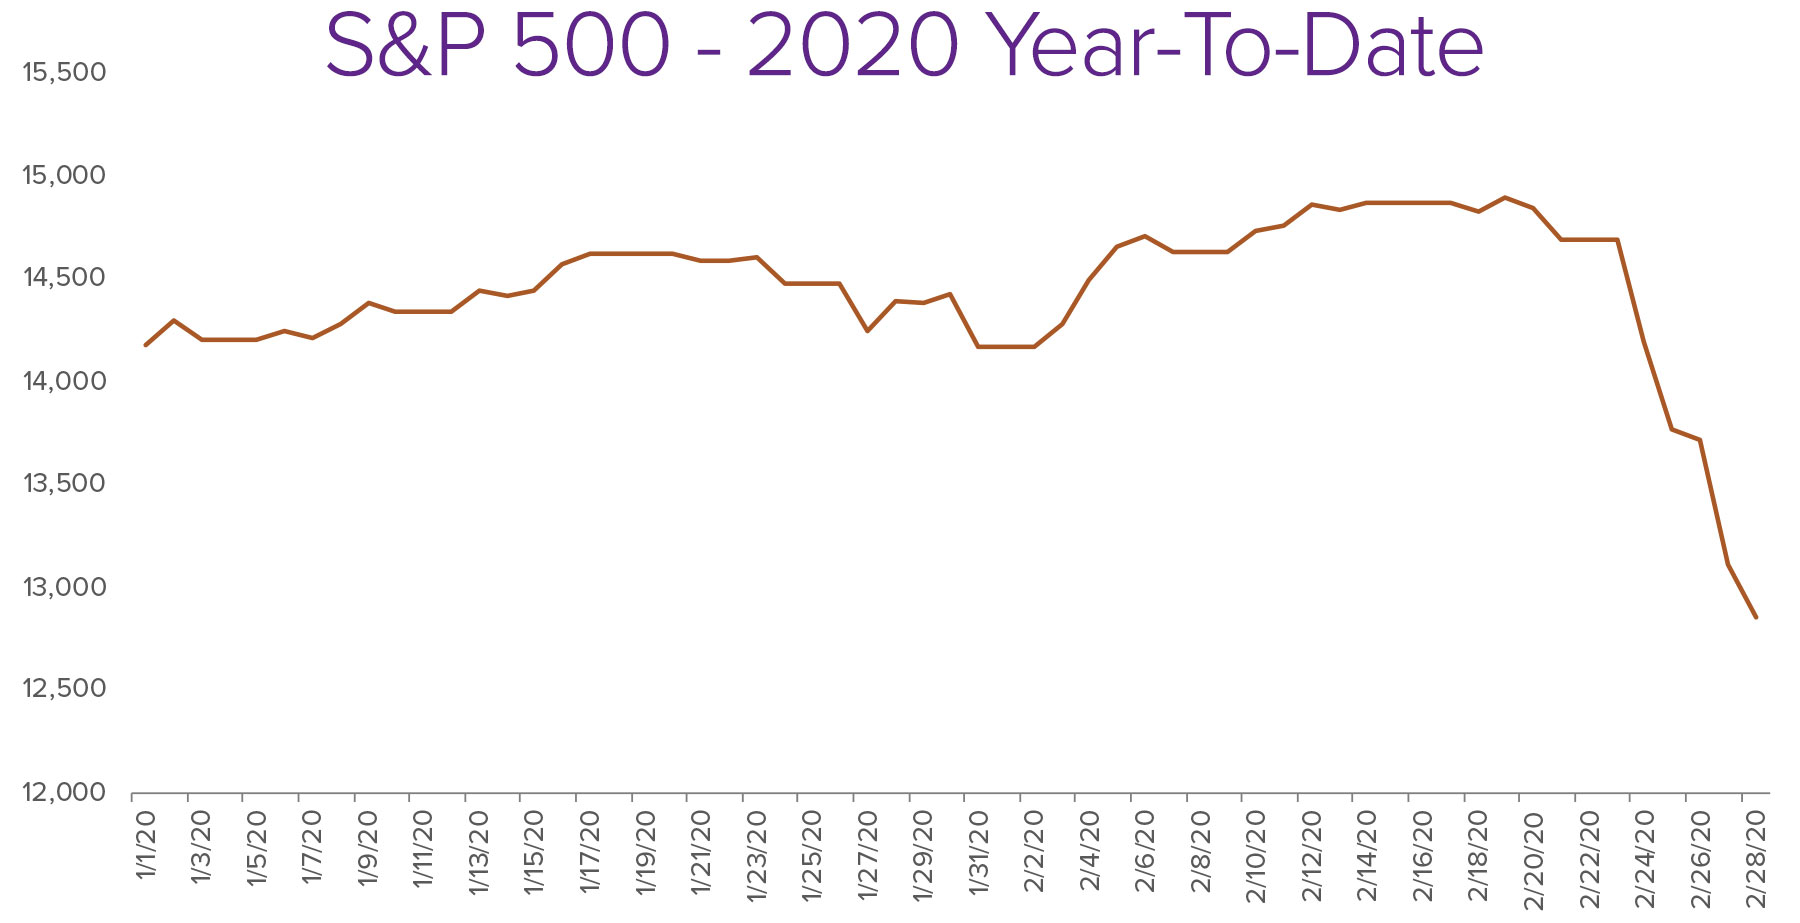 S&P 500 - 2020 Year To Date